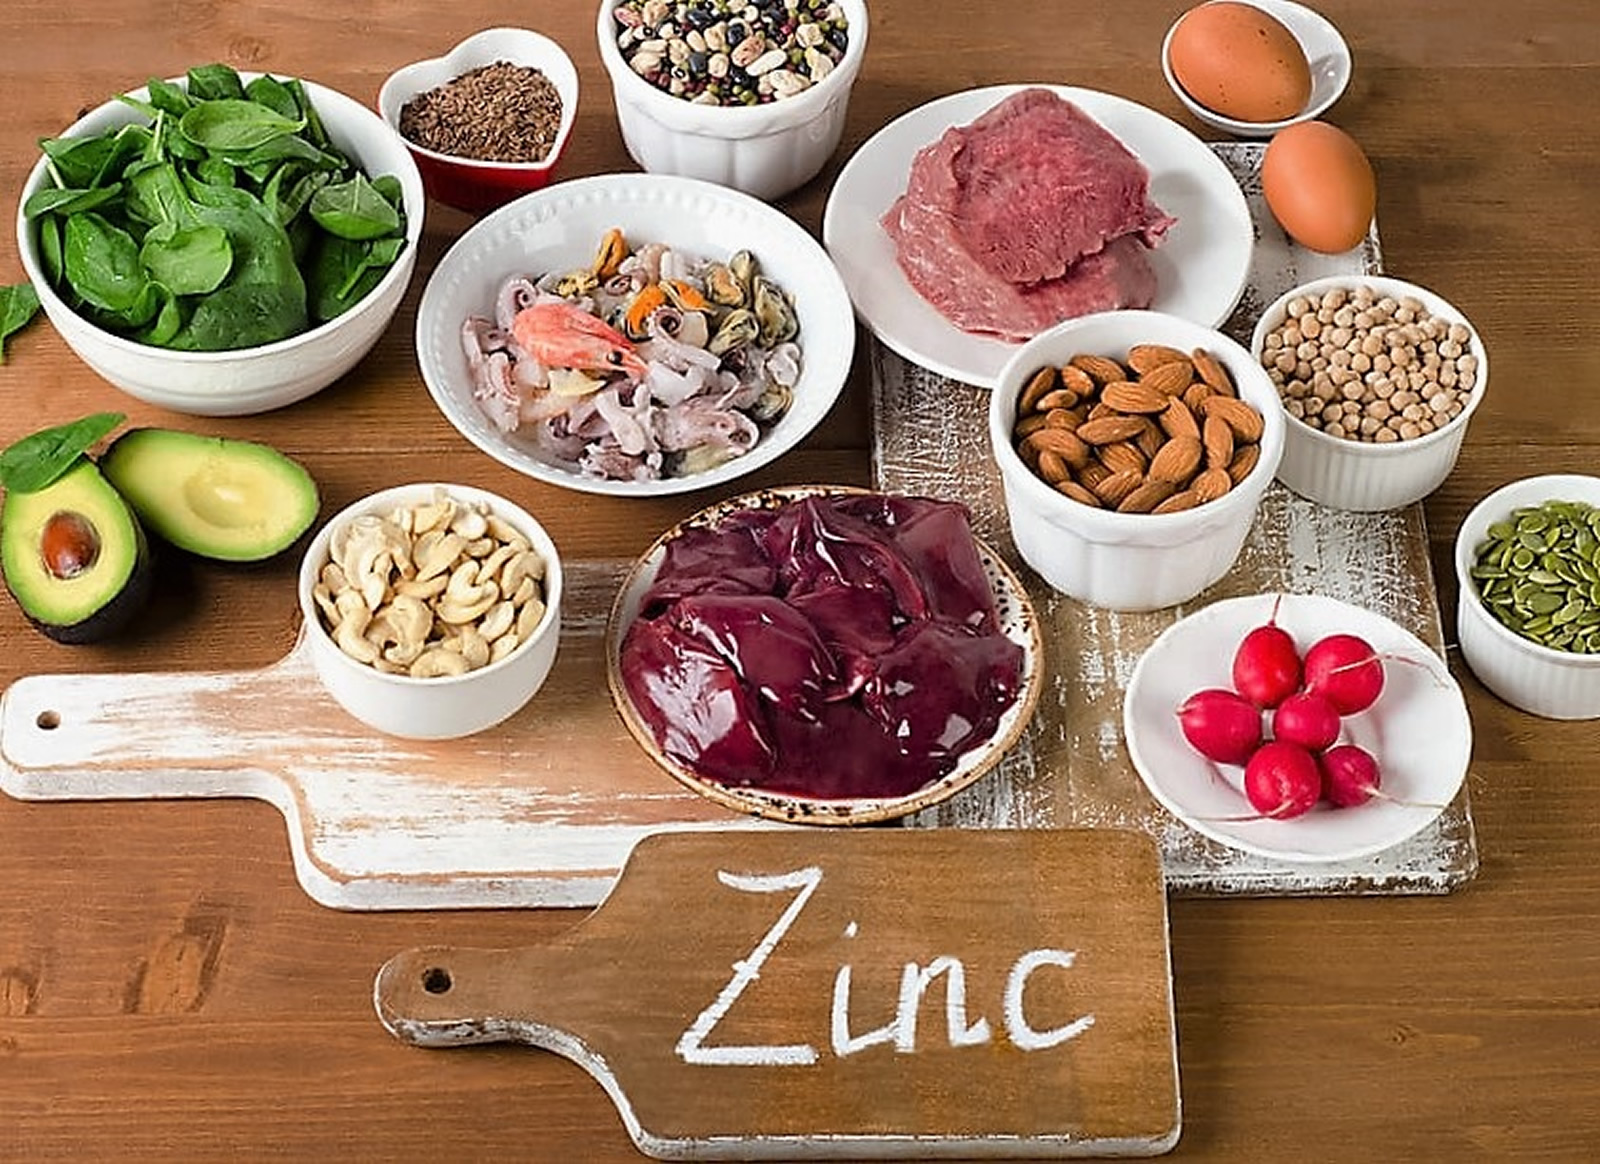 foods high in zinc